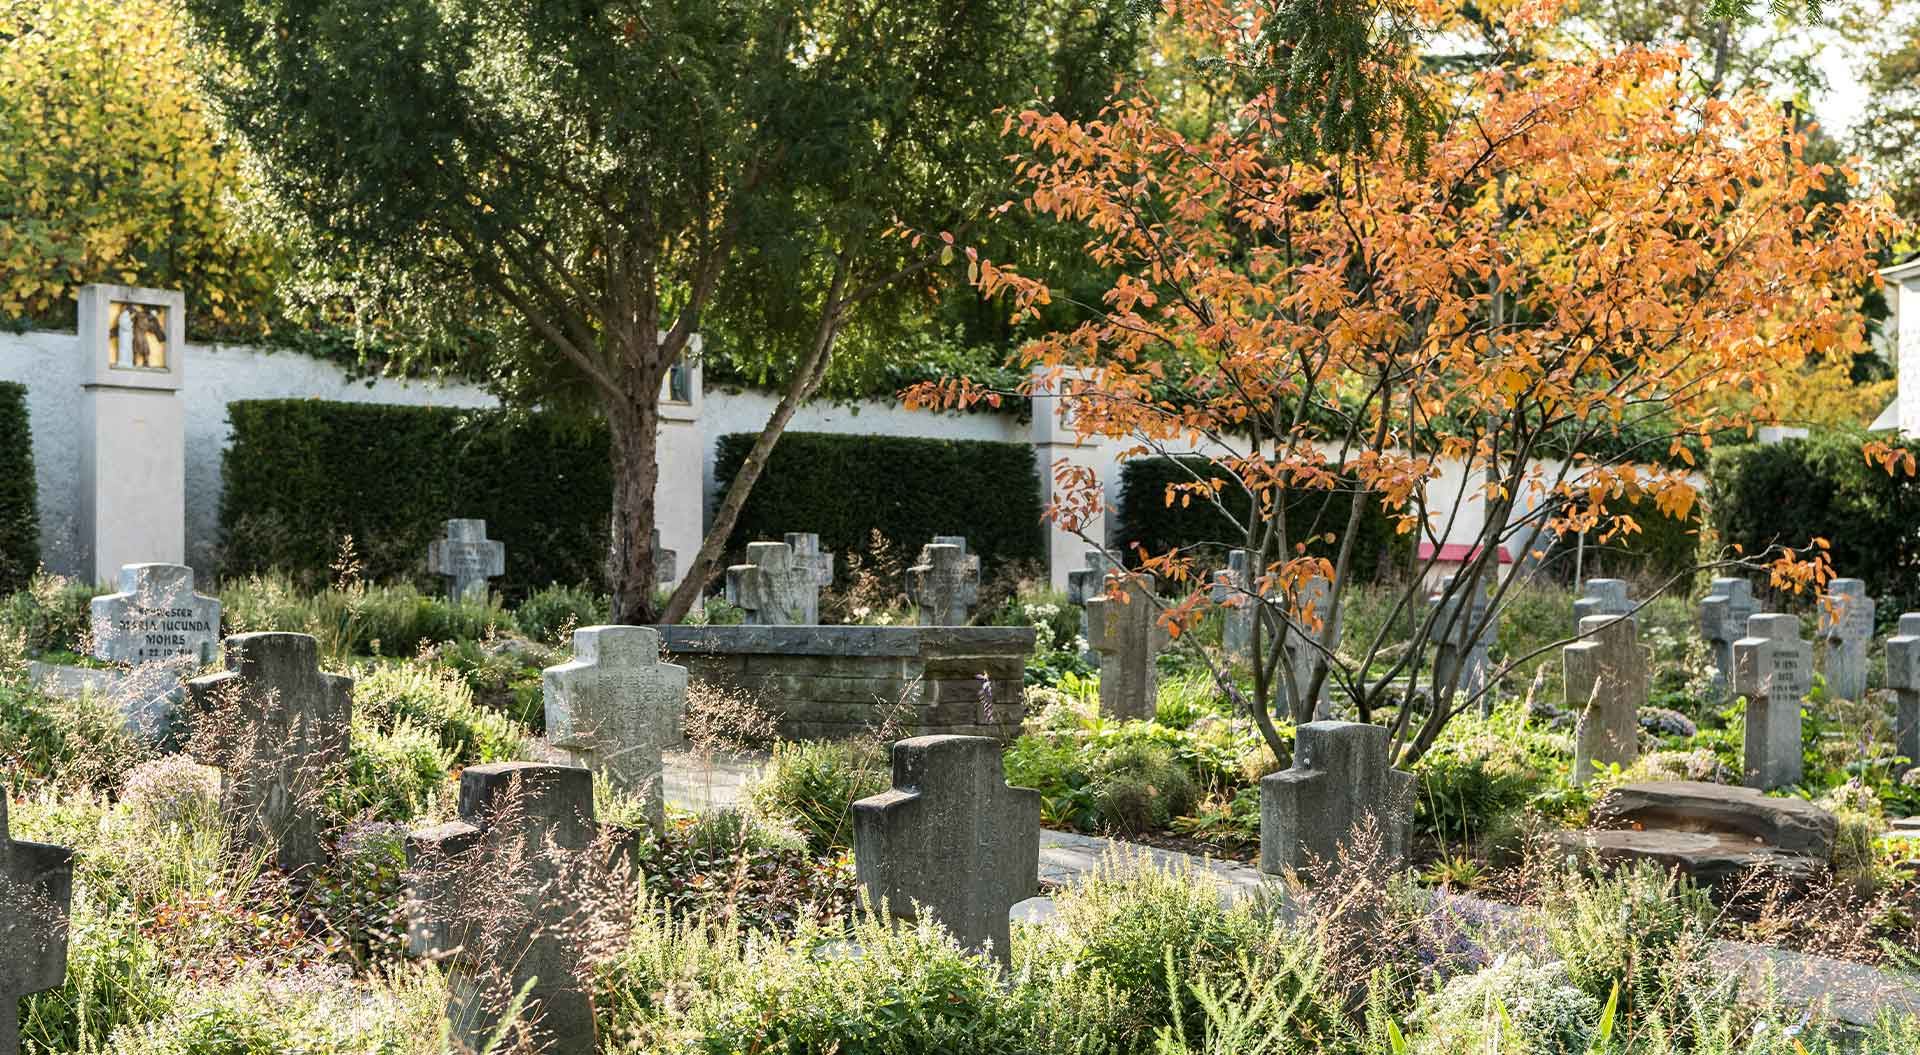 Cemetery aesthetically decorated with plants and trees